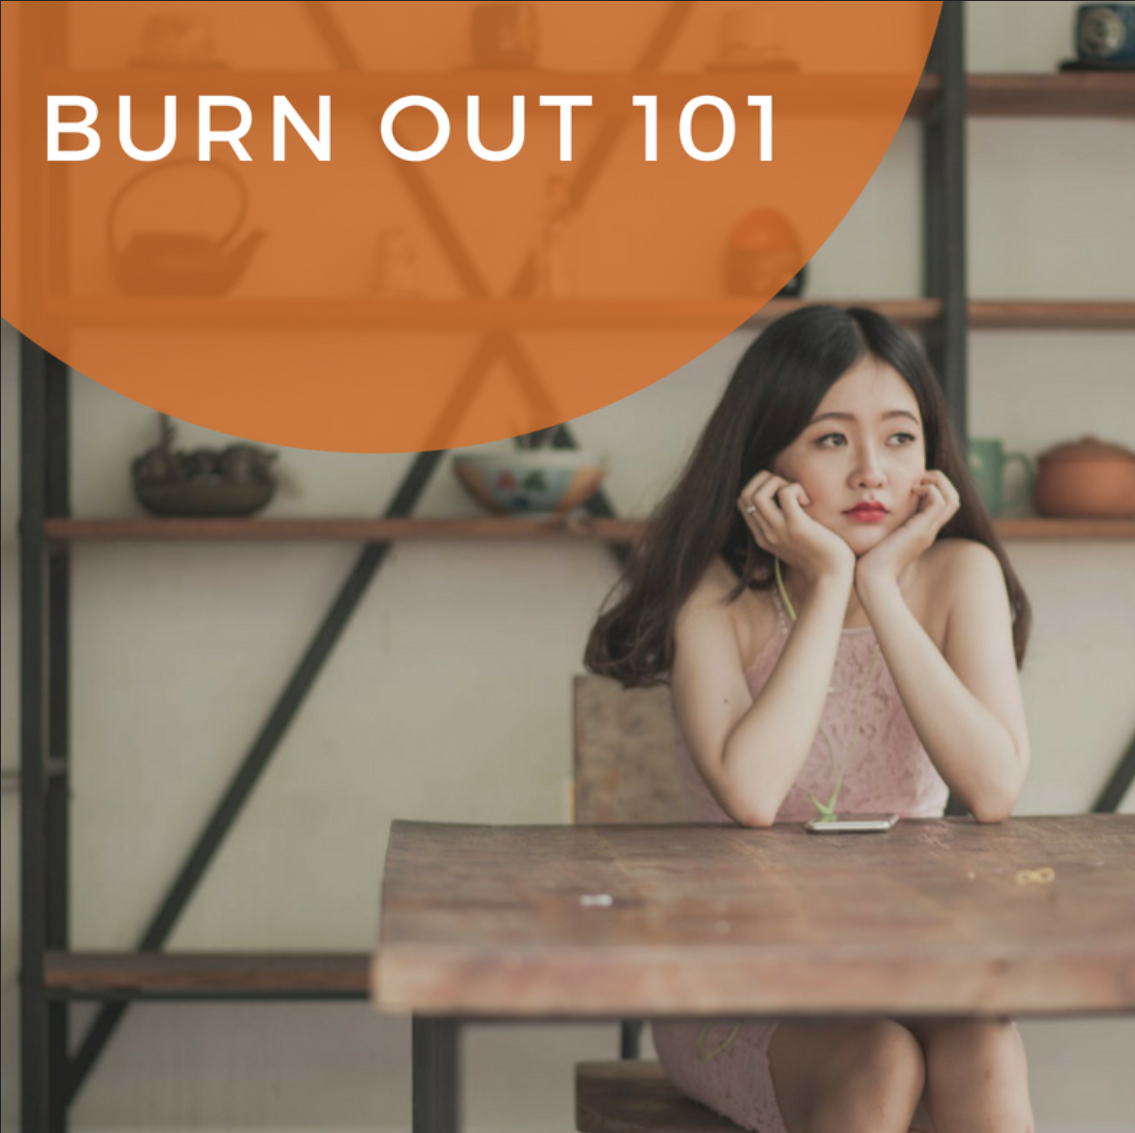 Burn Out 101